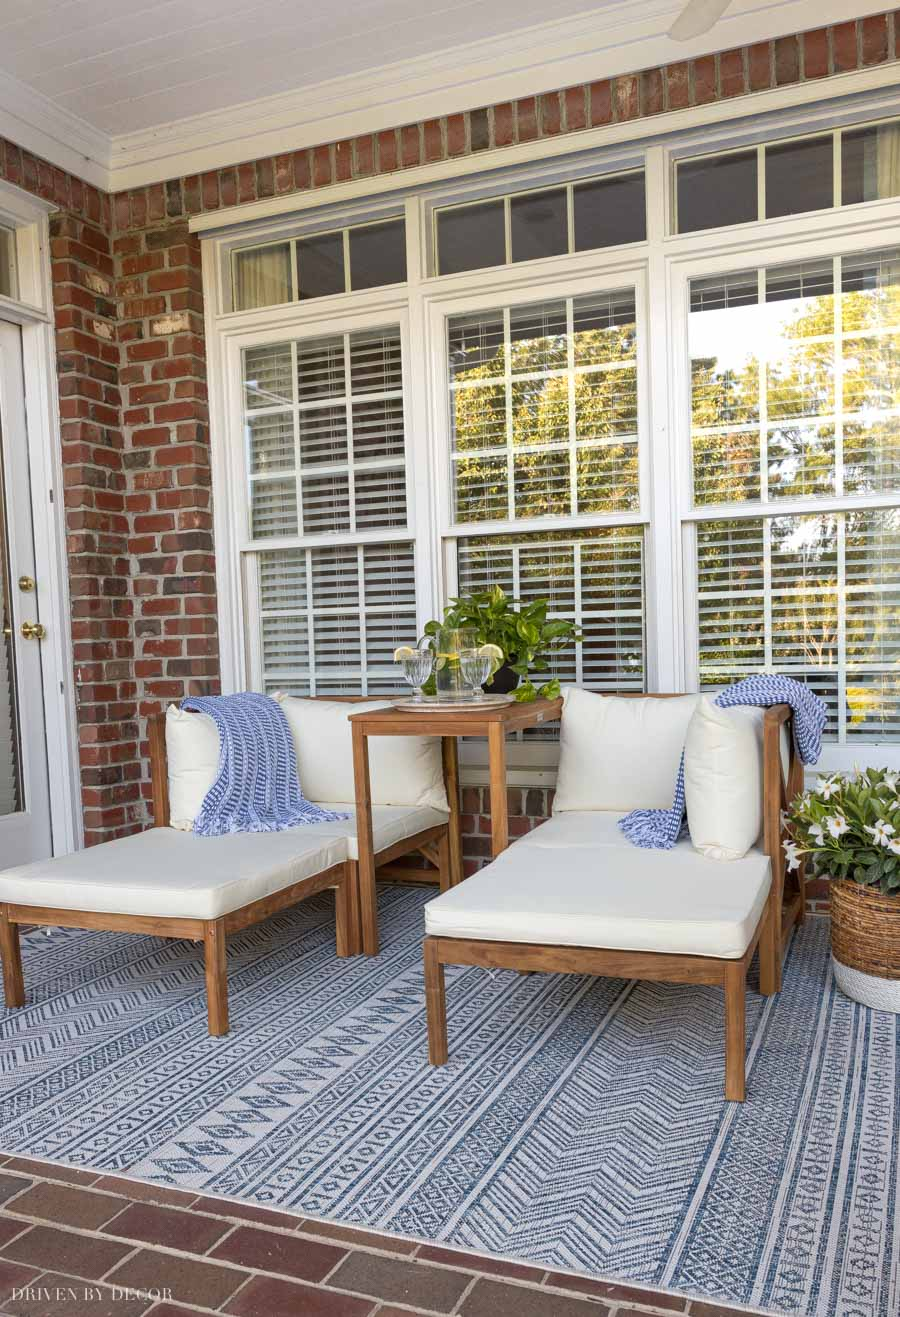 One outdoor decor idea is to use an outdoor rug to define this space!